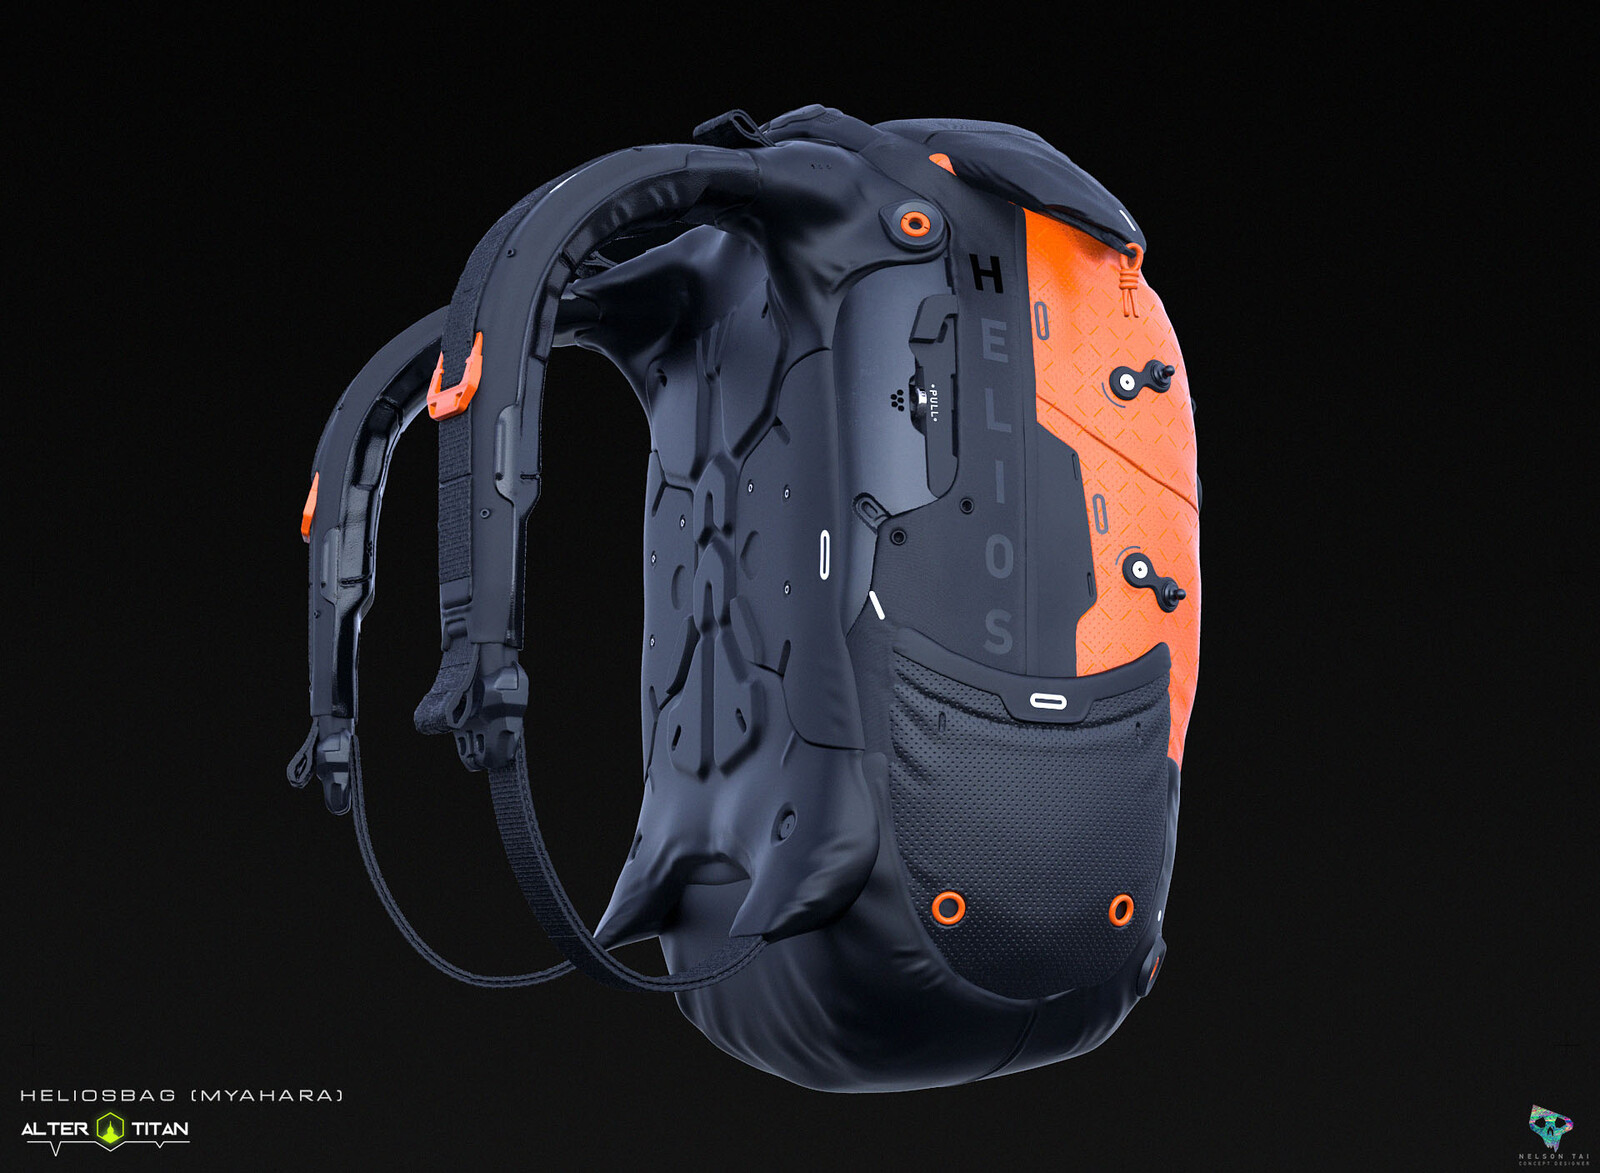 Cool breathable back ensures your Titan's comfort!